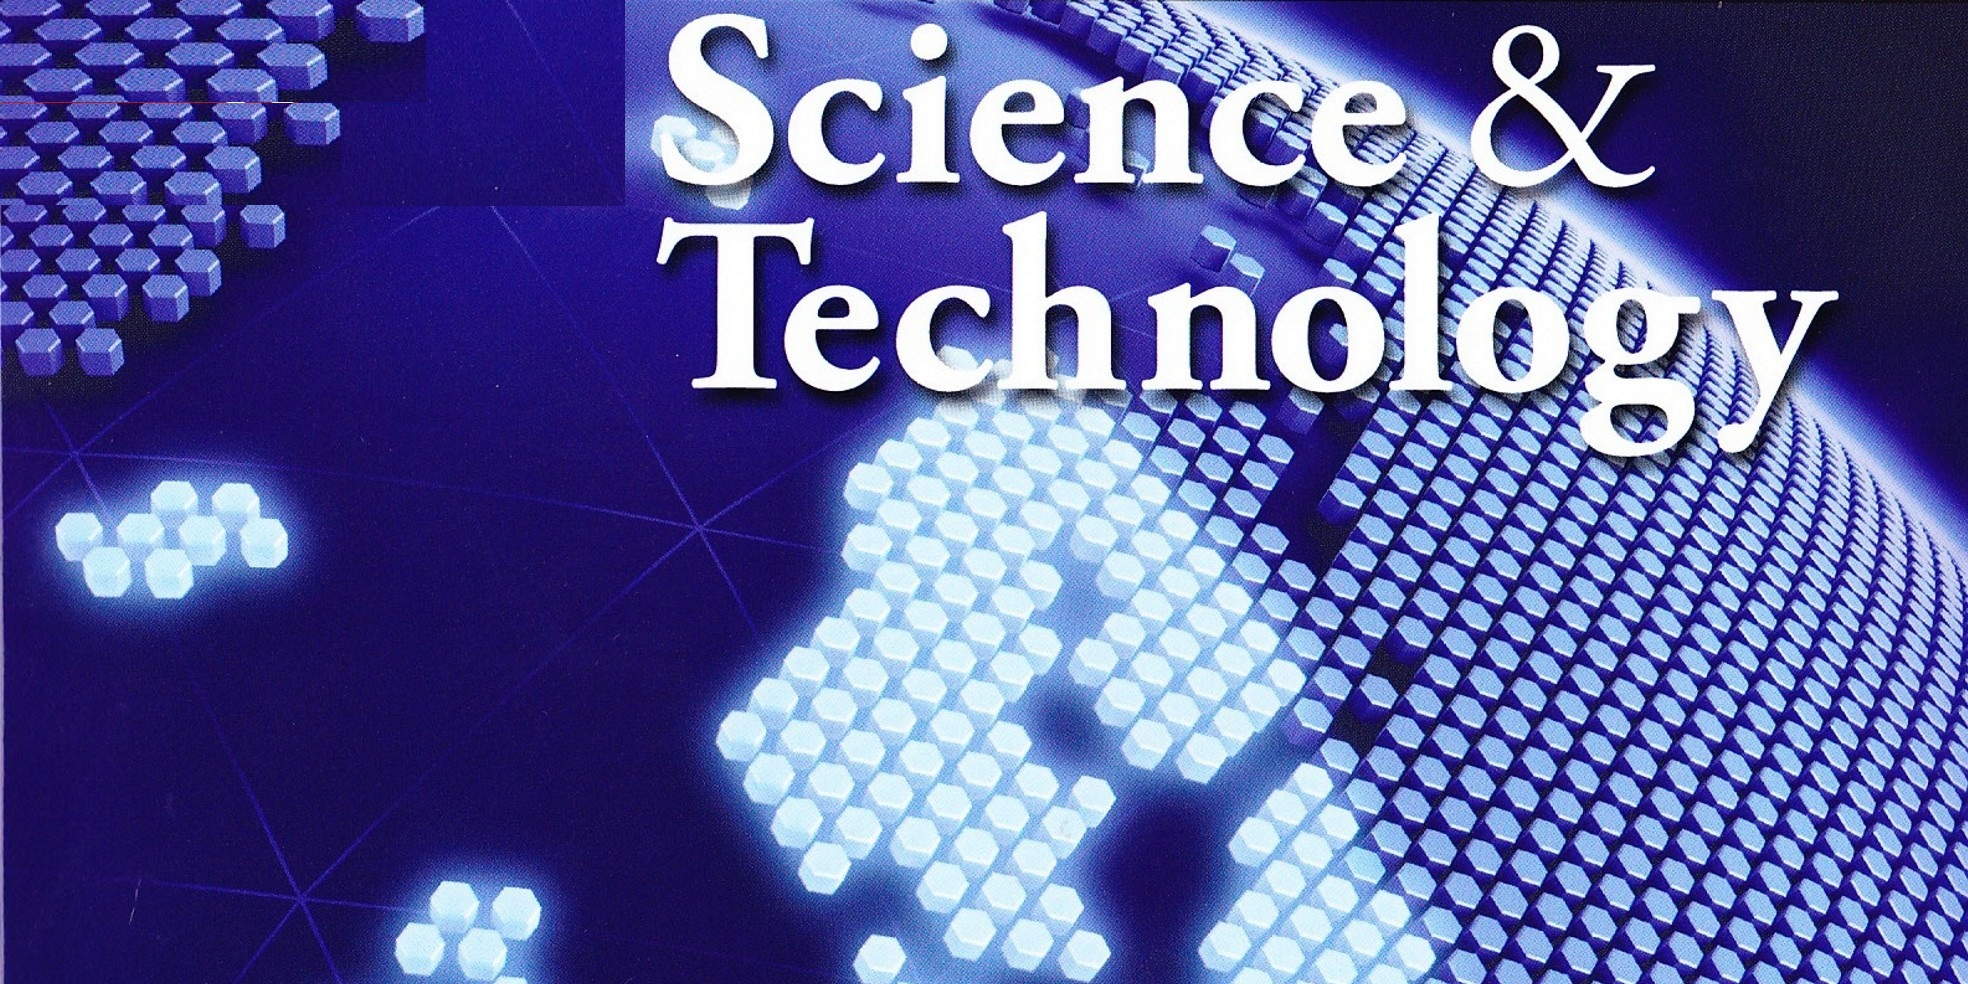 gp essays on science and technology